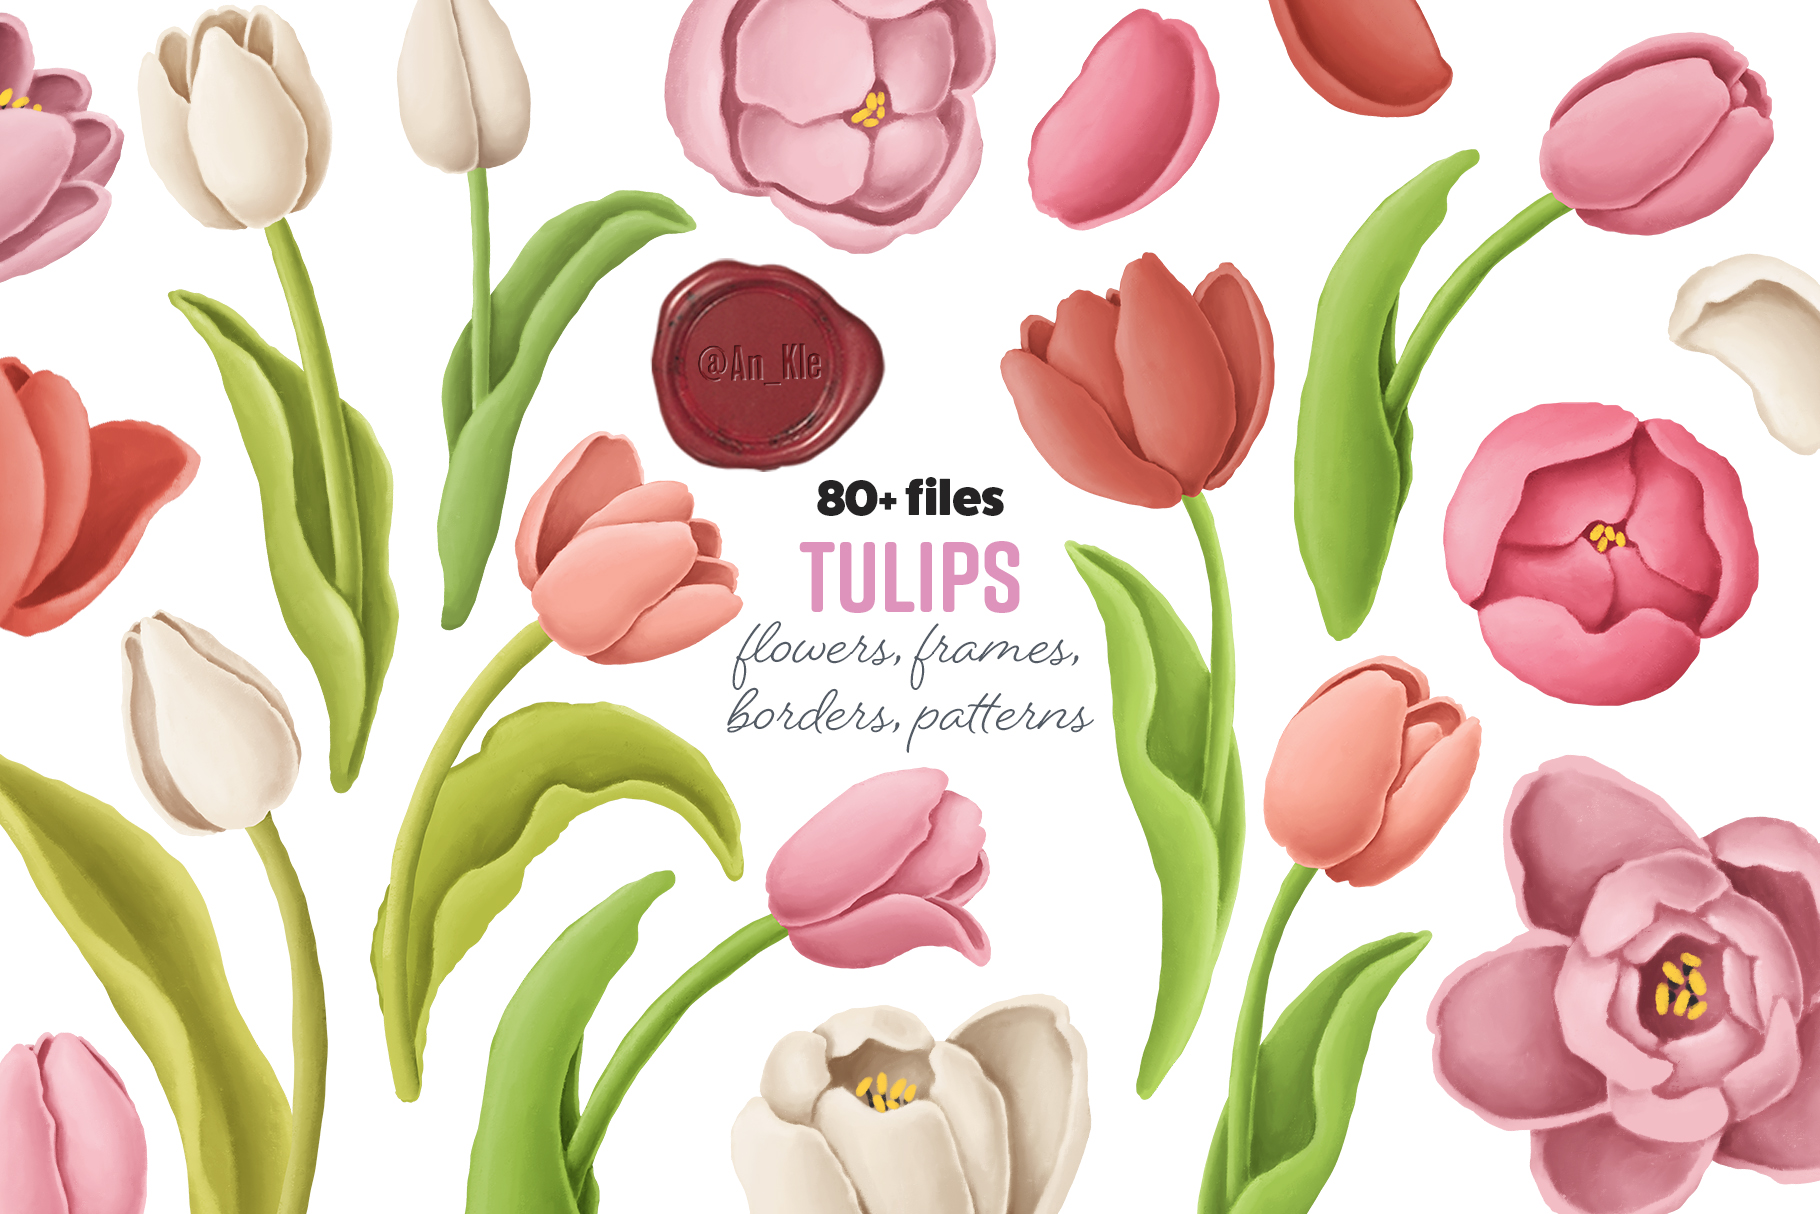 Tulips Flowers Patterns Borders 416500 Illustrations